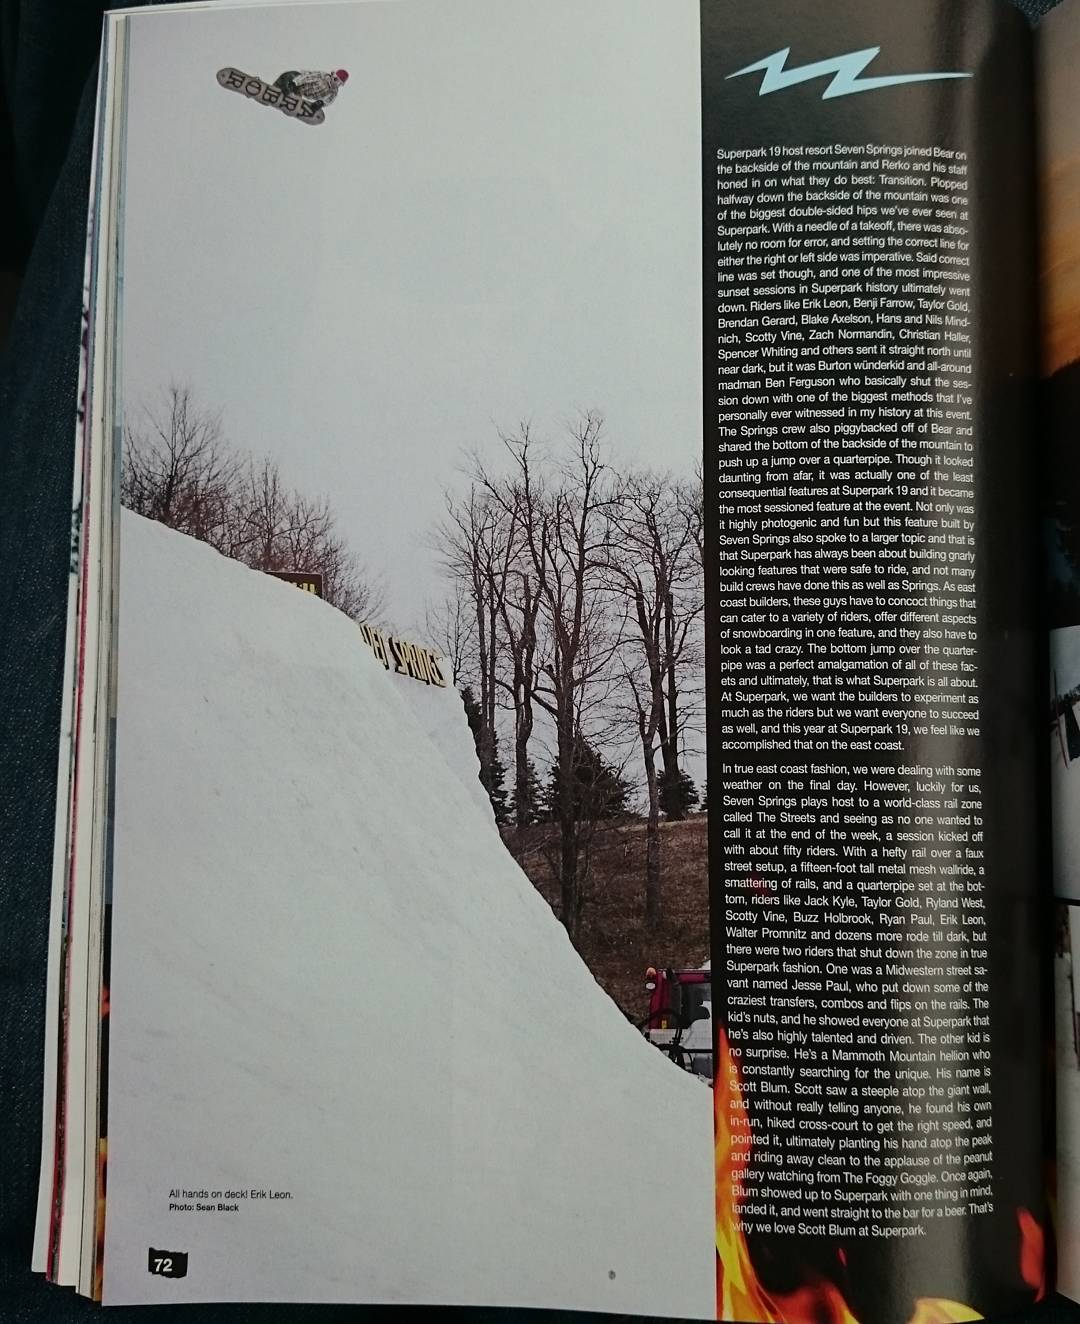 Big congratulations to @ErikLeon_ for this gigantic hip shot in the @SnowboarderMag #Superpark19 issue!